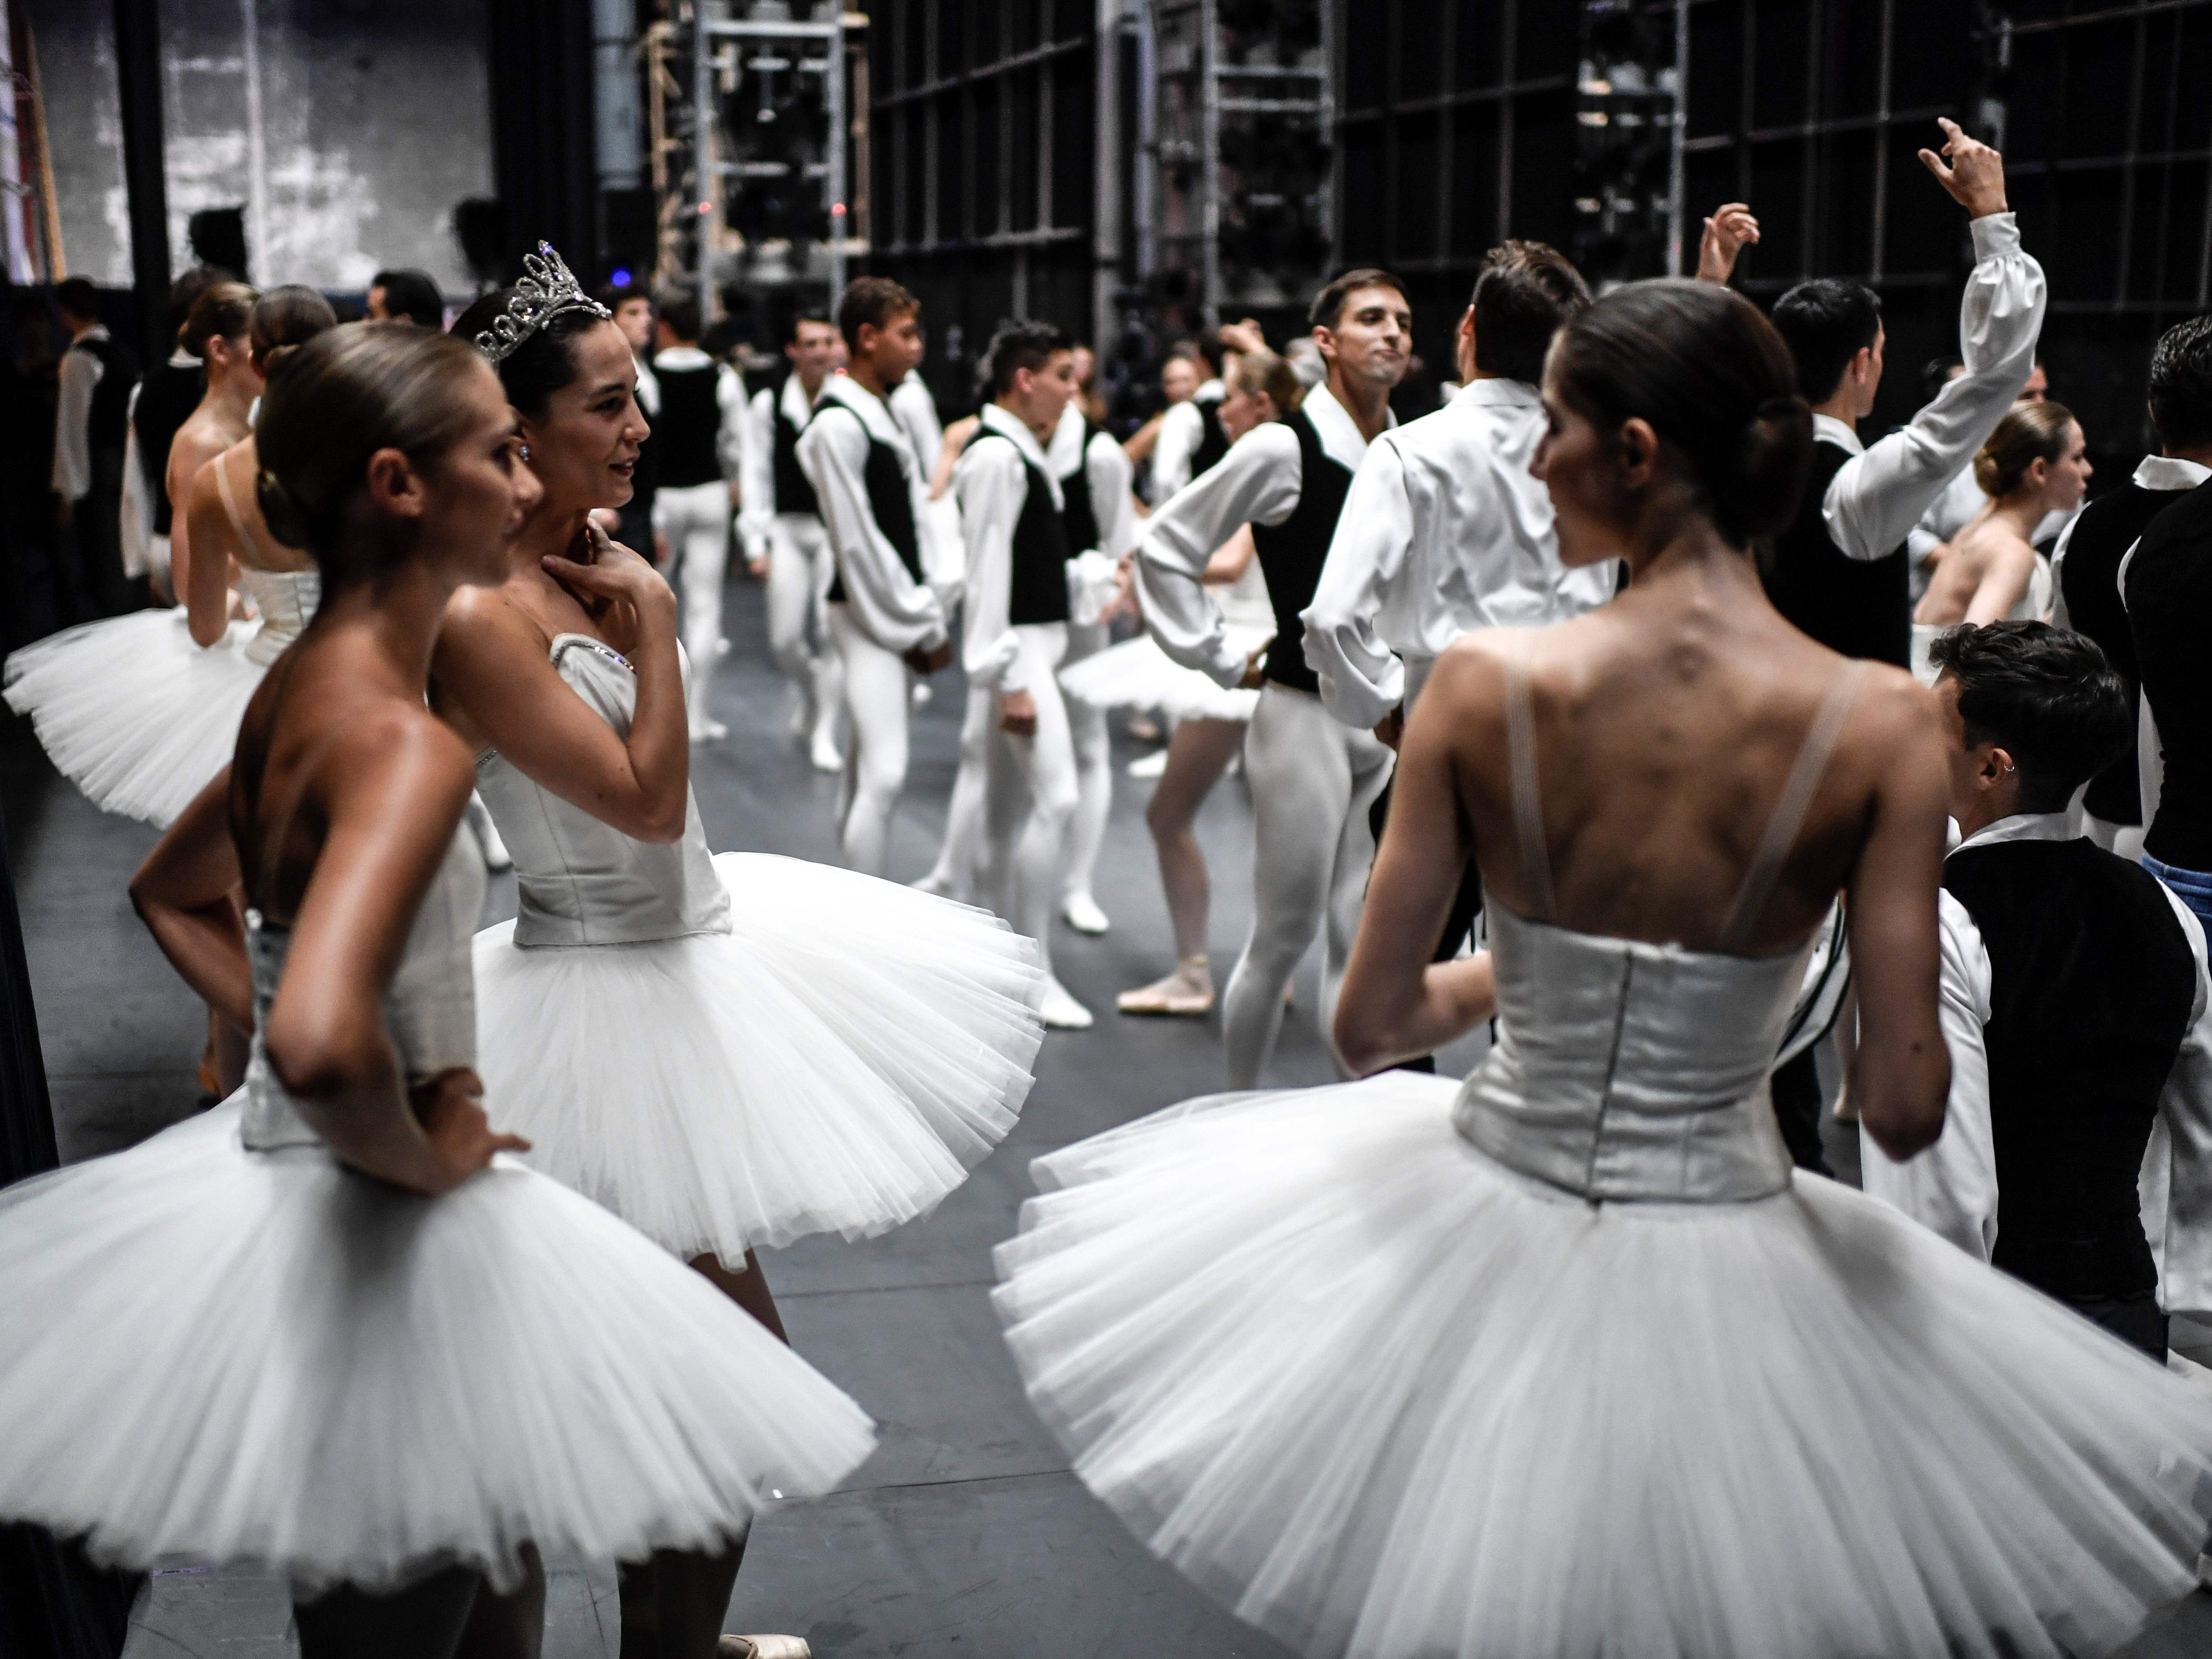 Dancers get ready on Sept. 27, 2018, prior to the annual gala at the Opera Garnier in Paris.